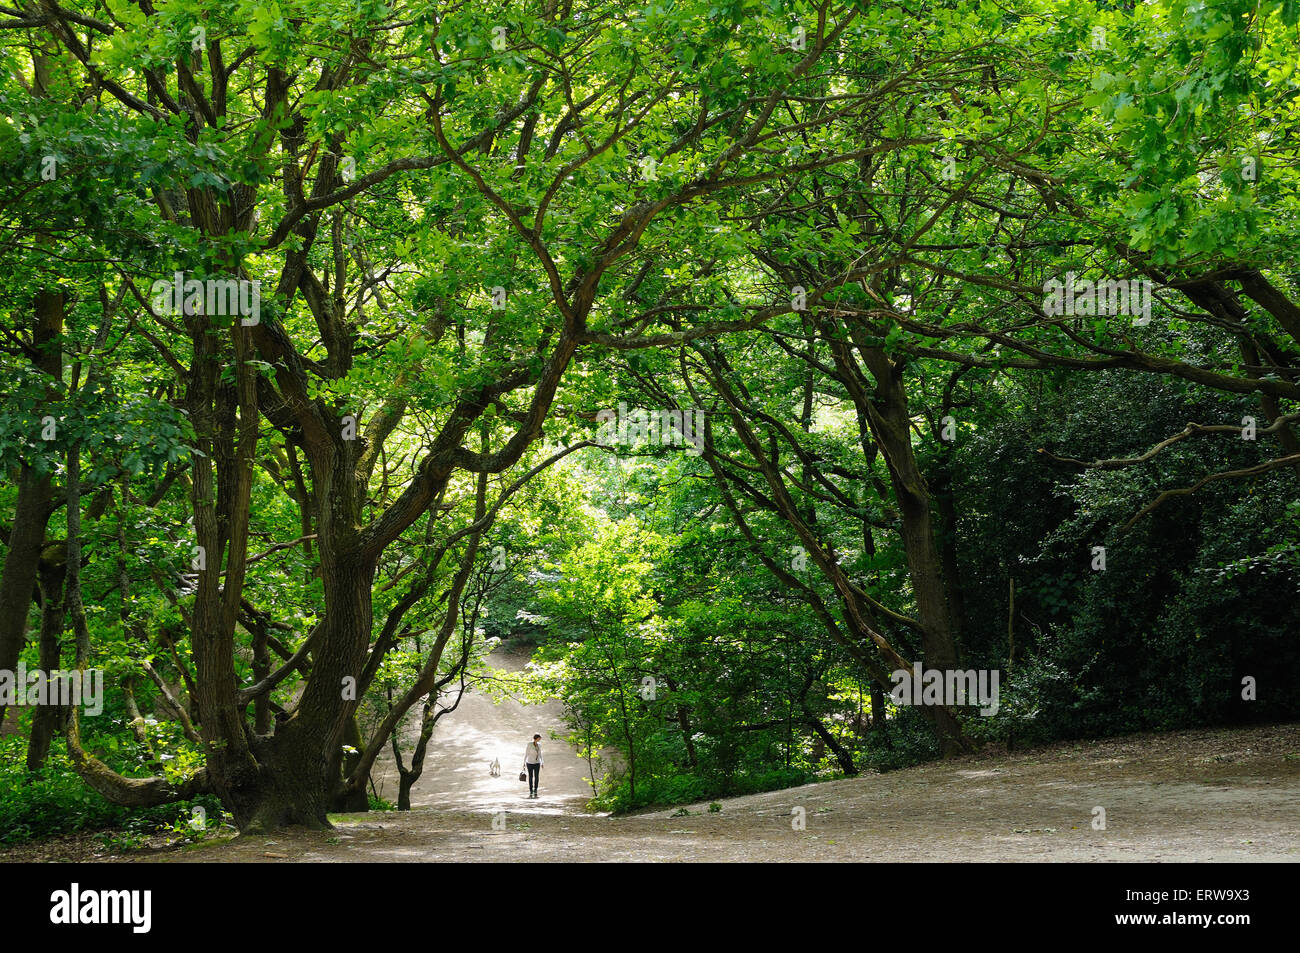 Woods and lone walker at Hampstead Heath, London UK - Stock Image